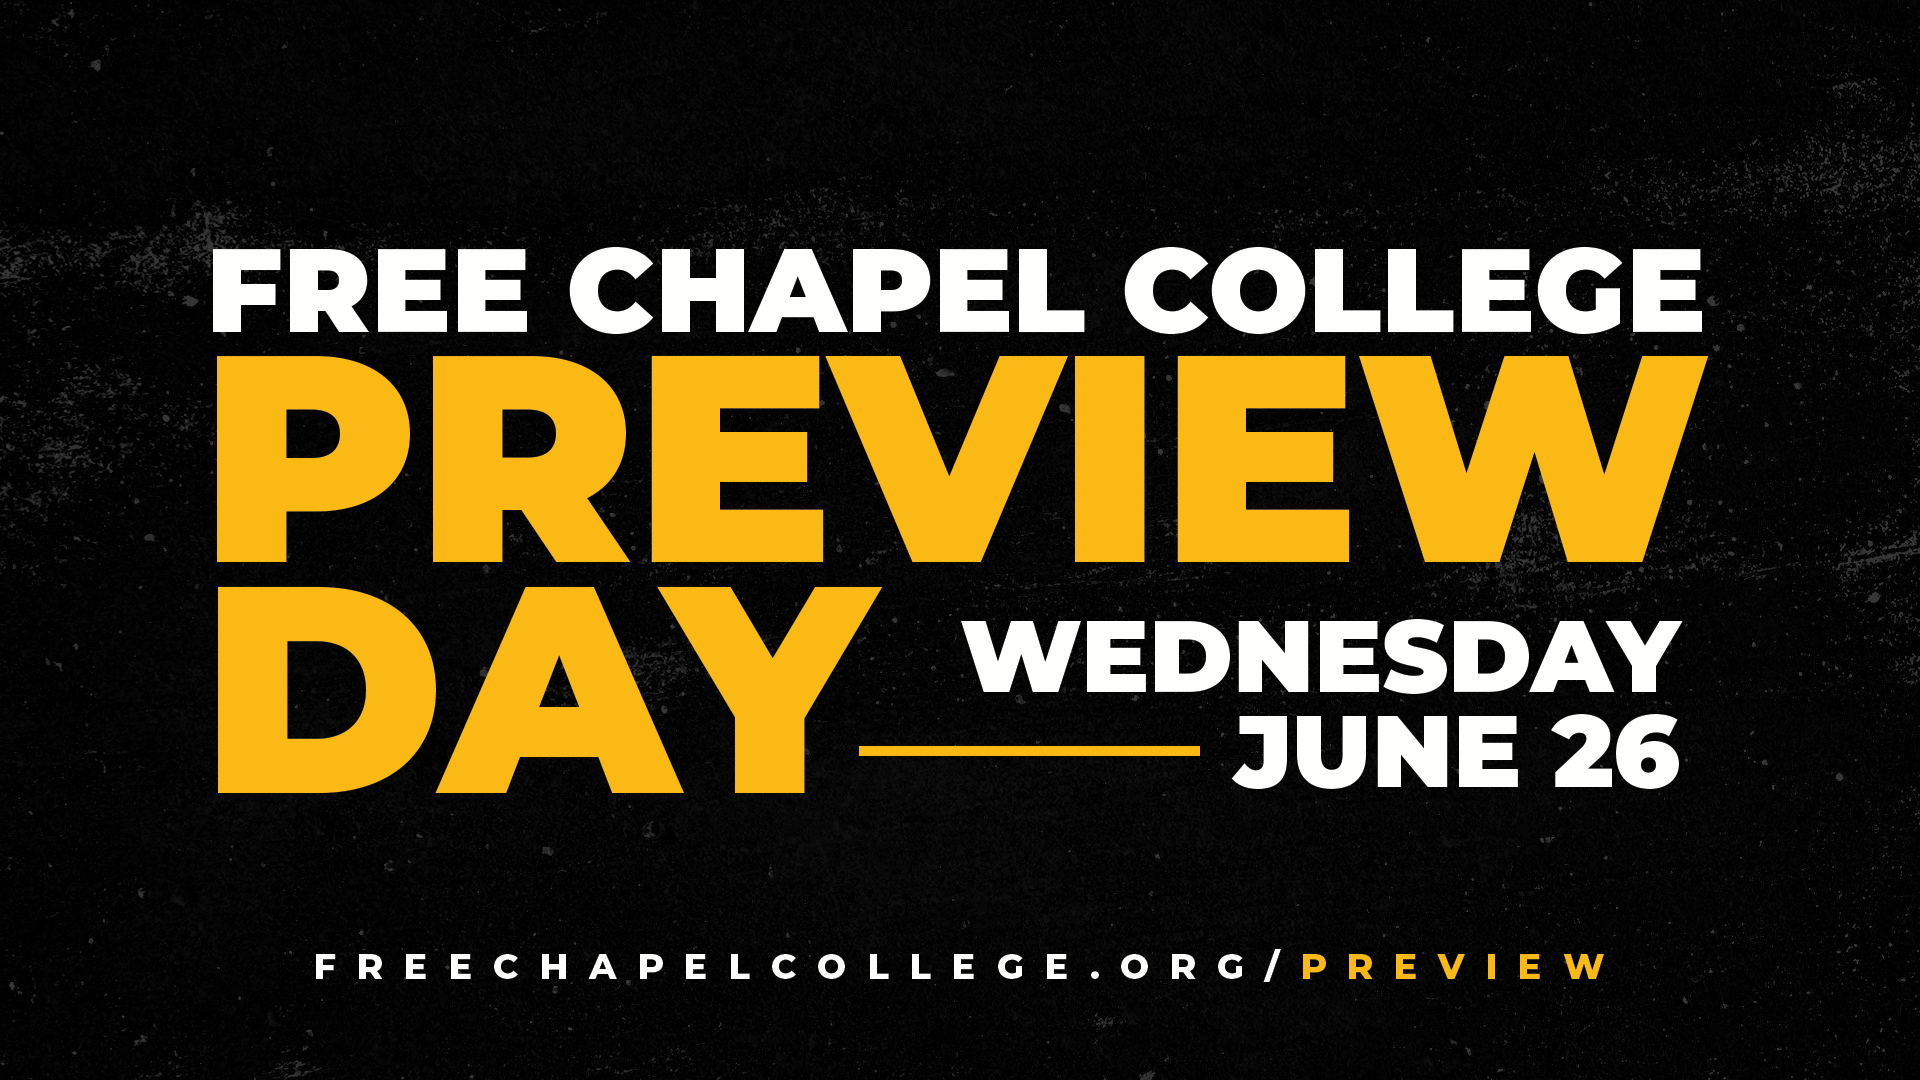 Free Chapel College Preview Day at the Spartanburg campus